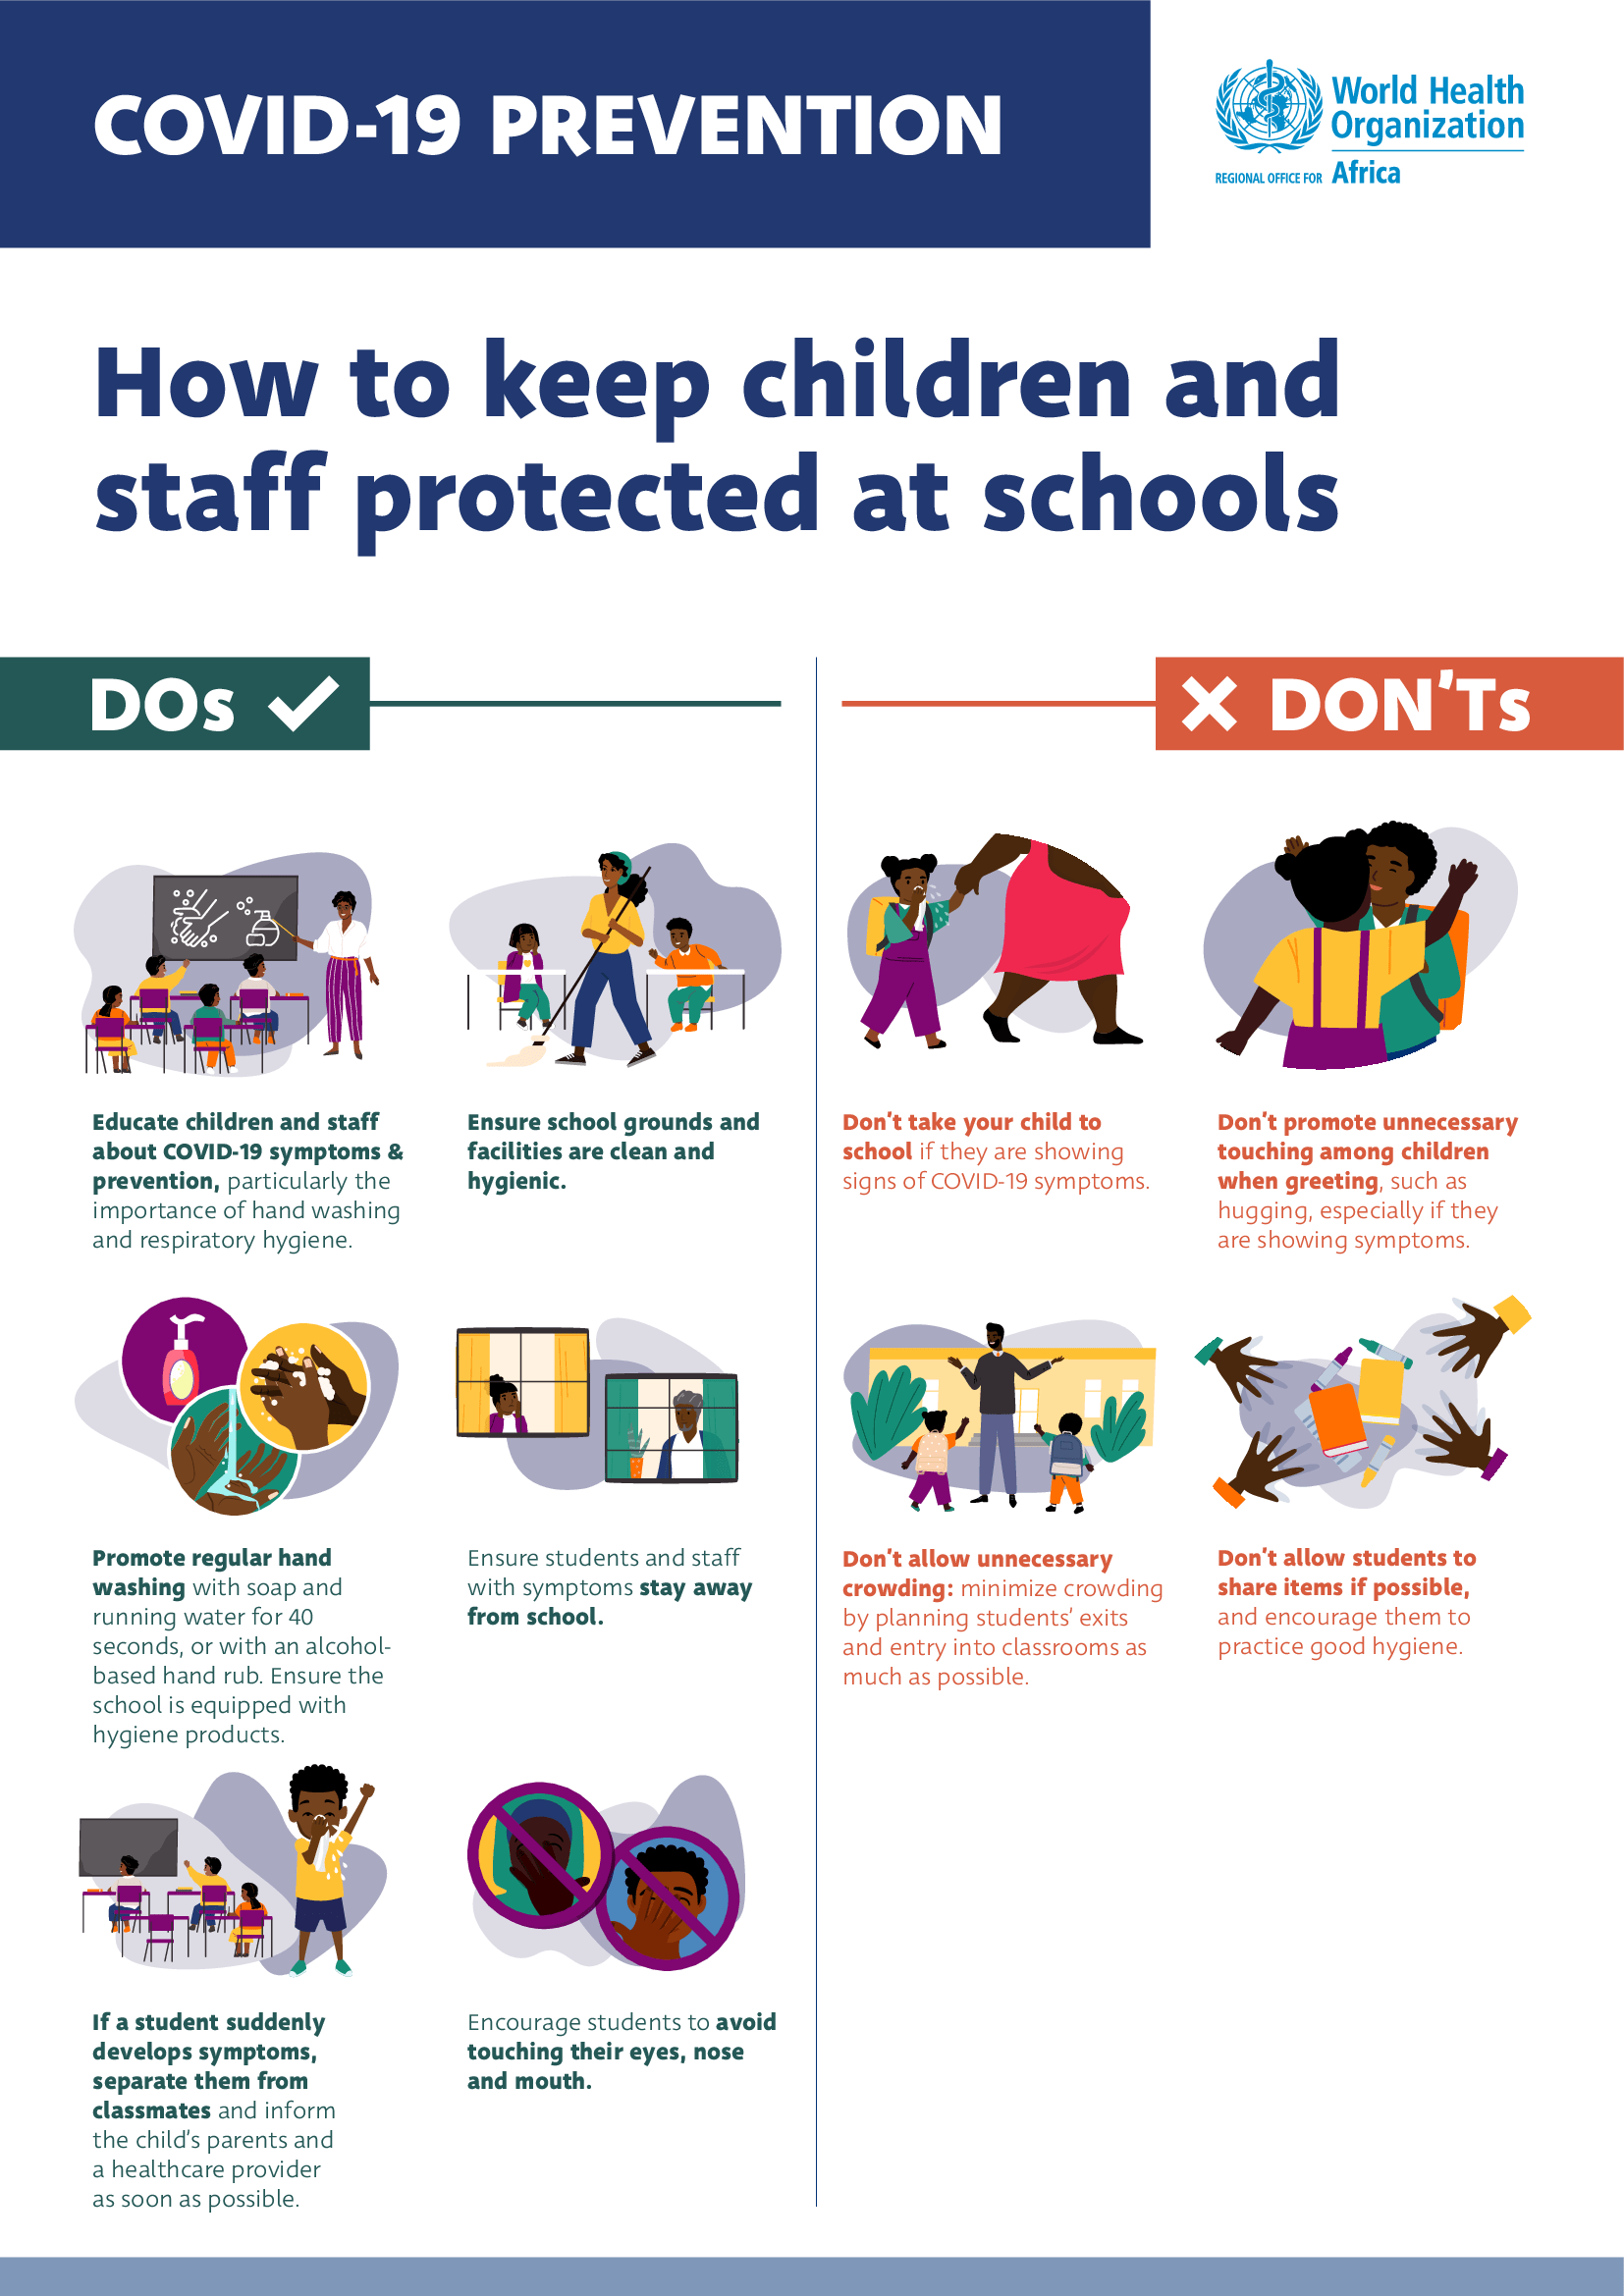 this diagram shows how to keep children and staff protected at school